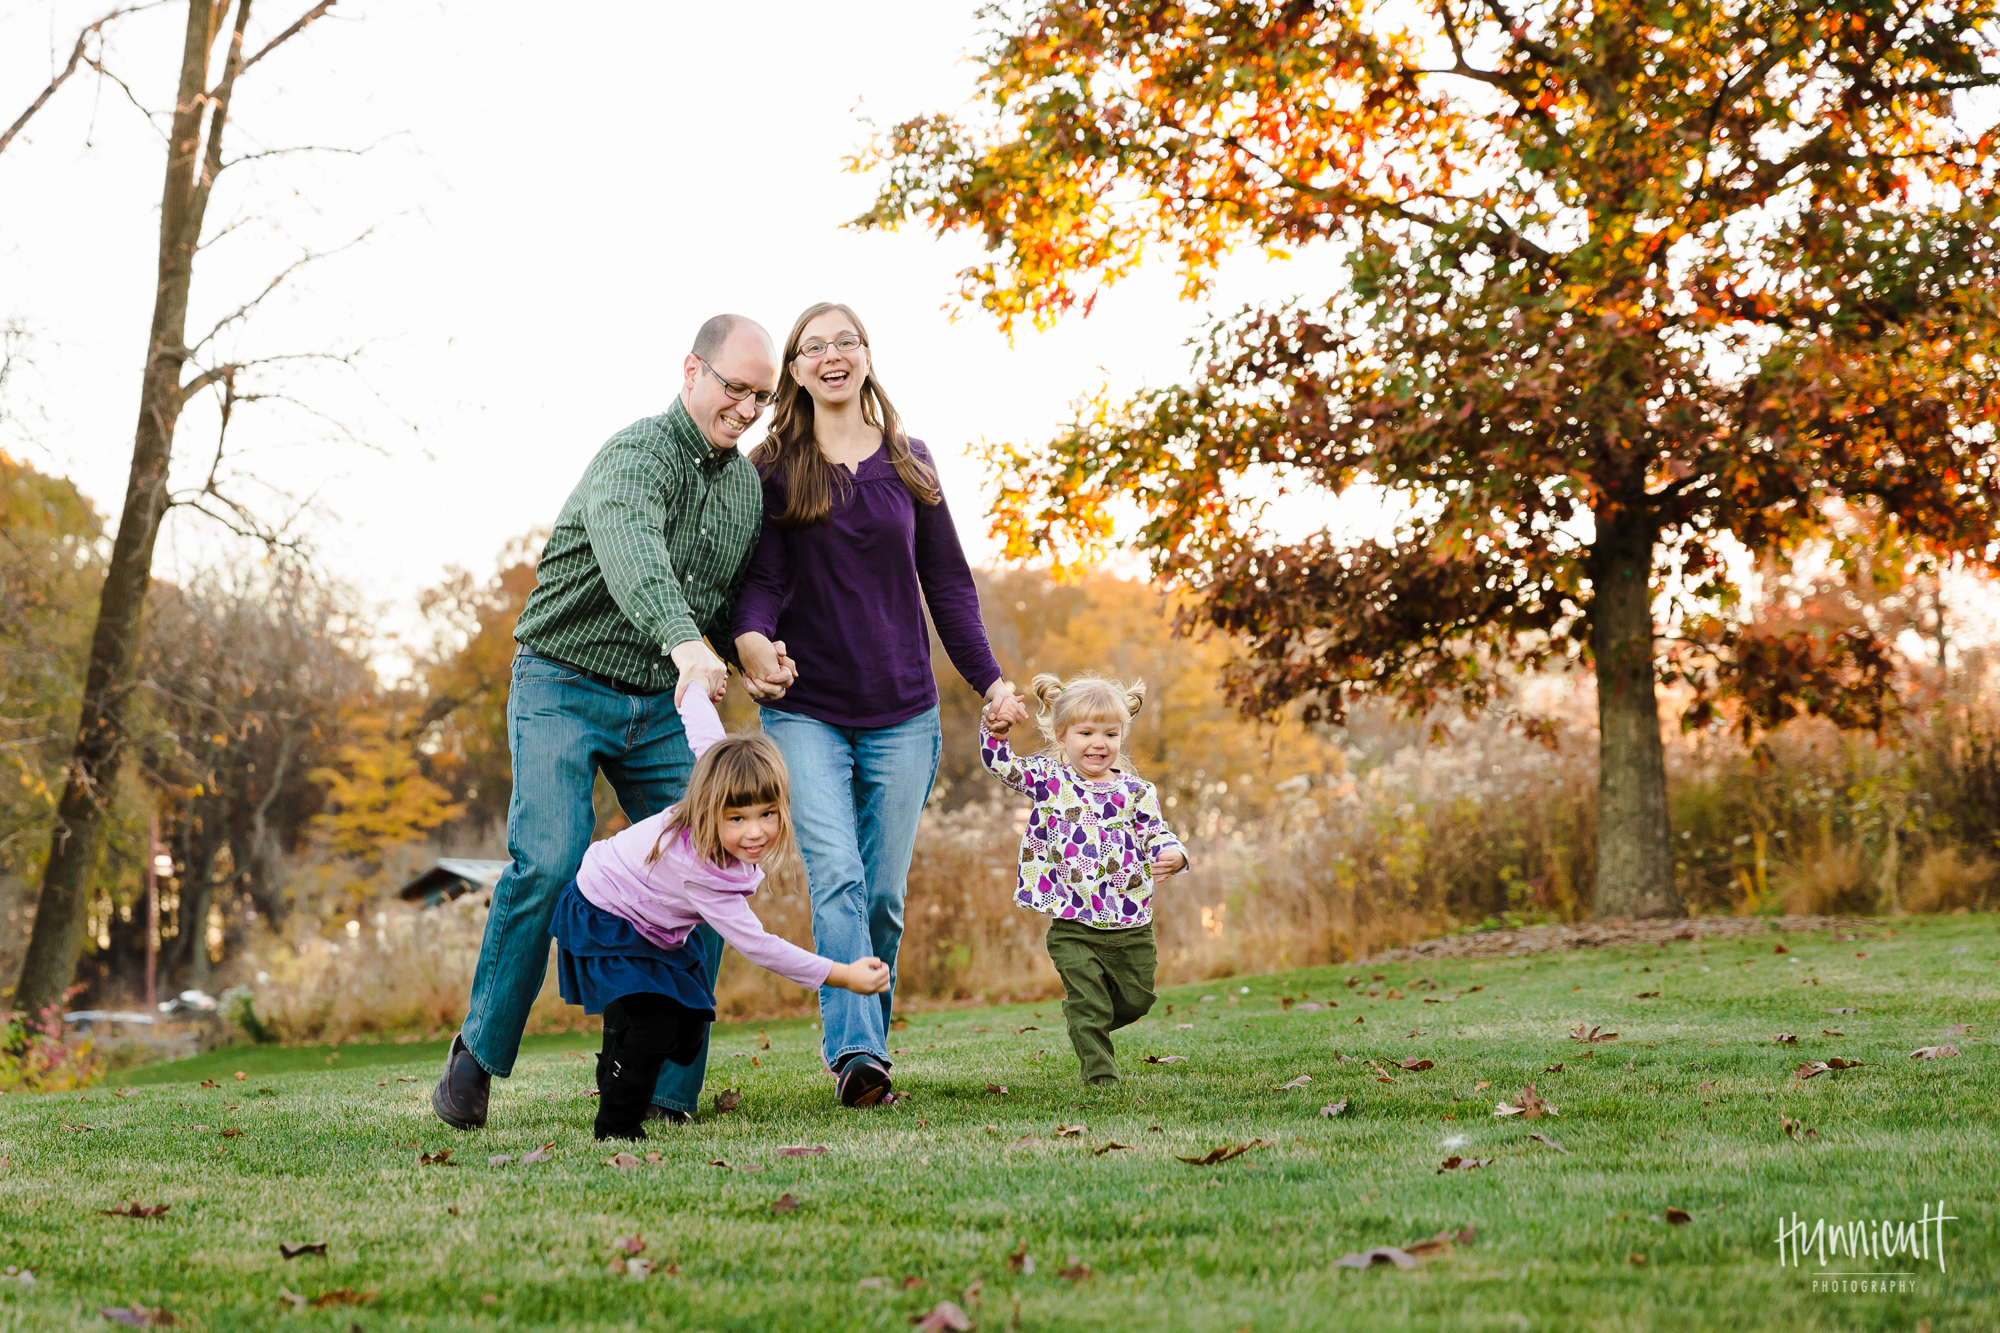 Outdoor-Park-Family-Hunnicutt-Photography-Rebecca-Hunnicutt-Farren-USA-11